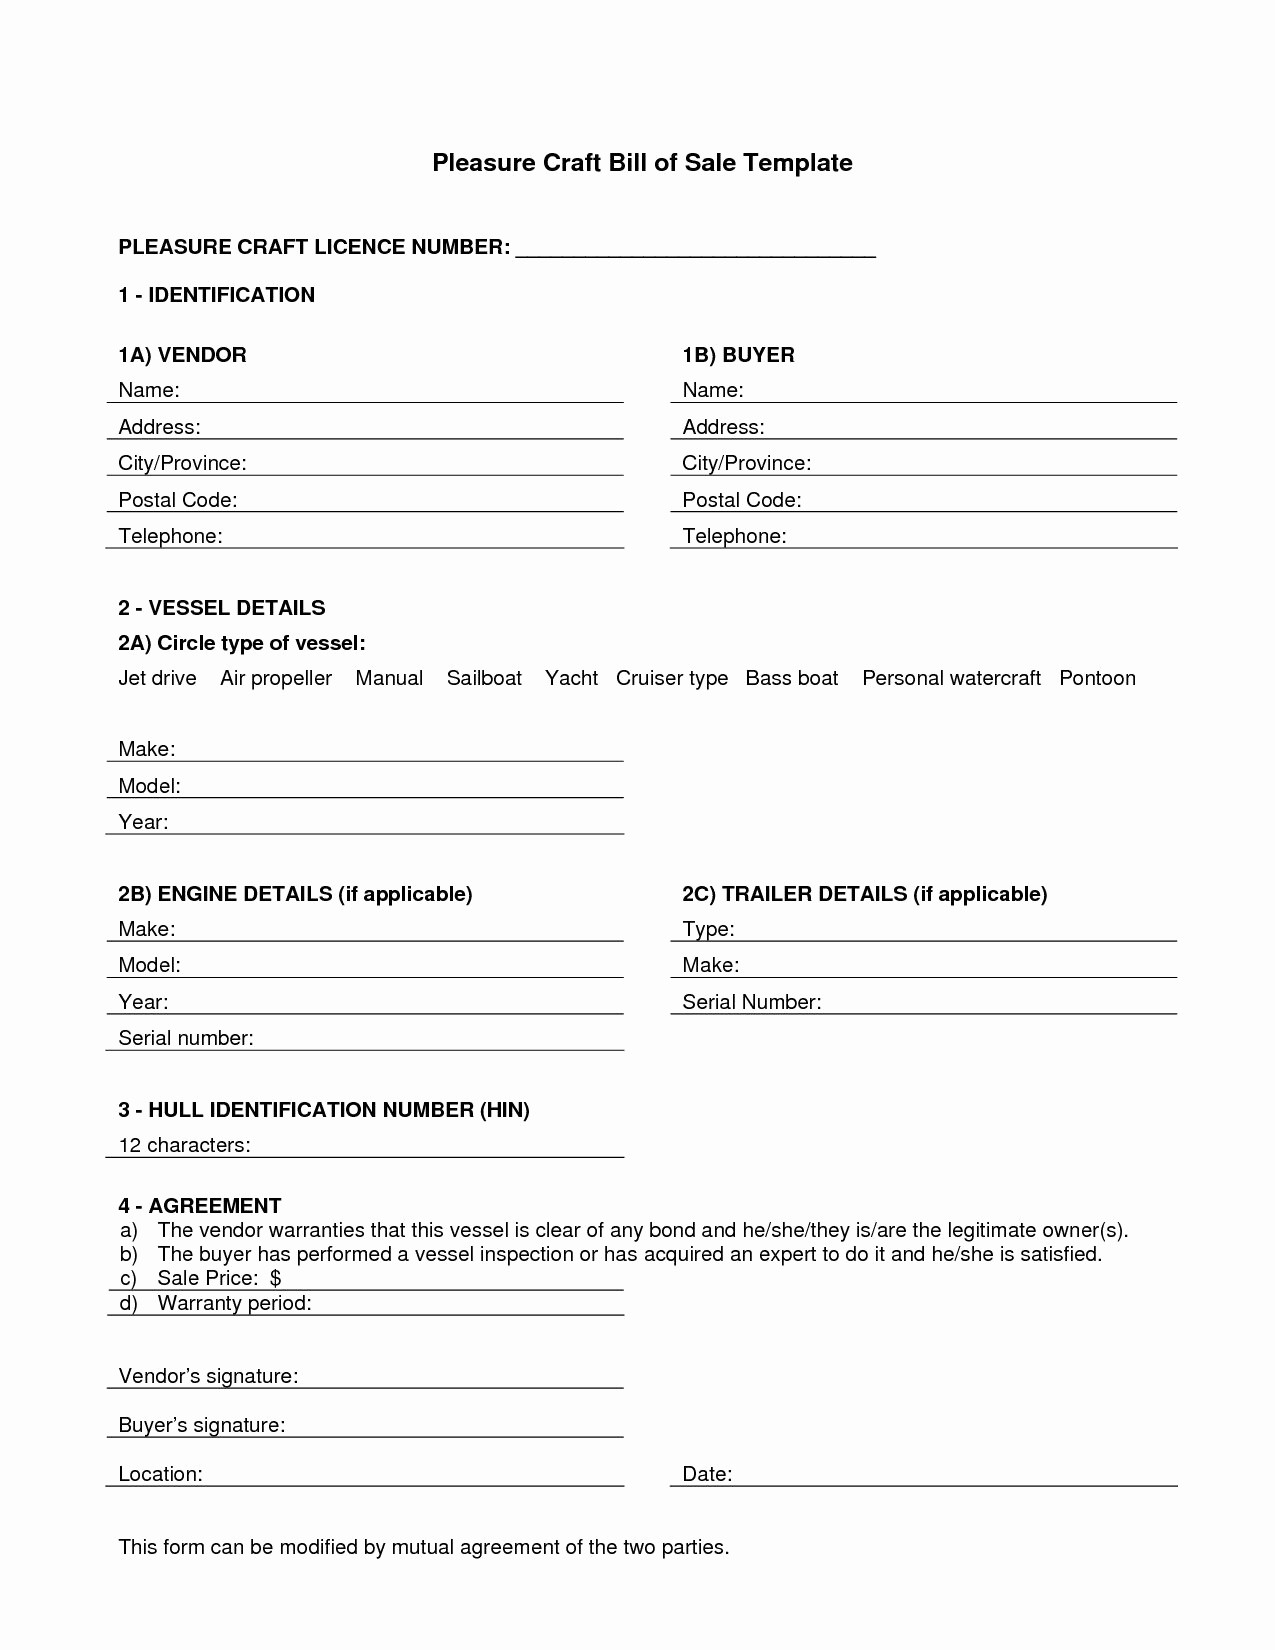 Bill Of Sale Illinois Pdf Unique Bill Sale Template Auto Sample Worksheets Car Word Uk